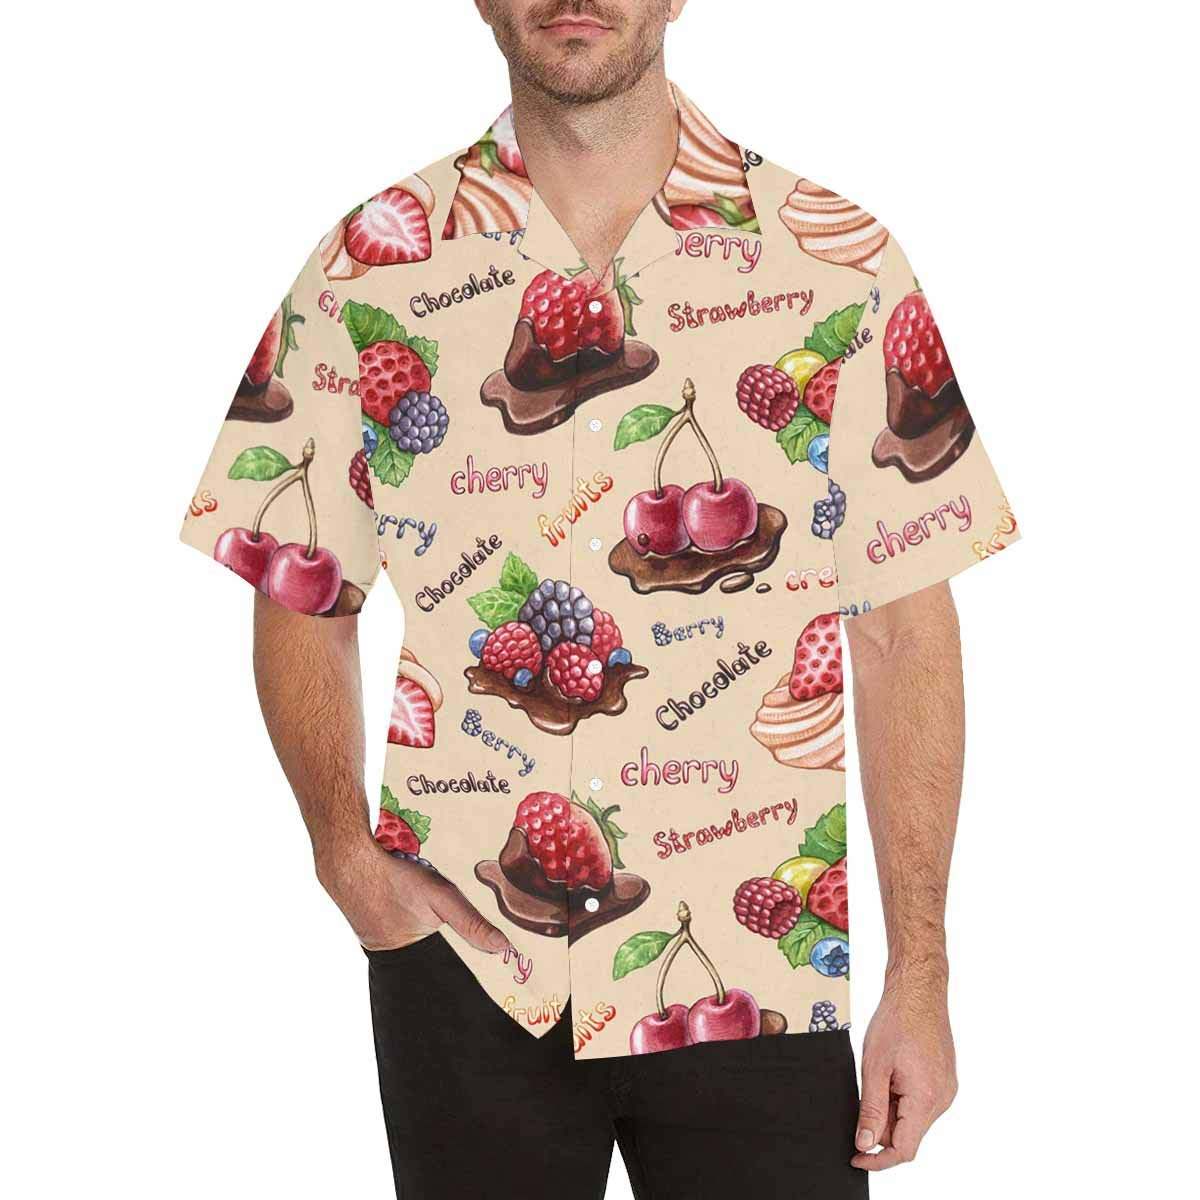 InterestPrint Comfortably Collared Watercolor Berry Casual Shirts V-Neck Short Sleeve Beach Top